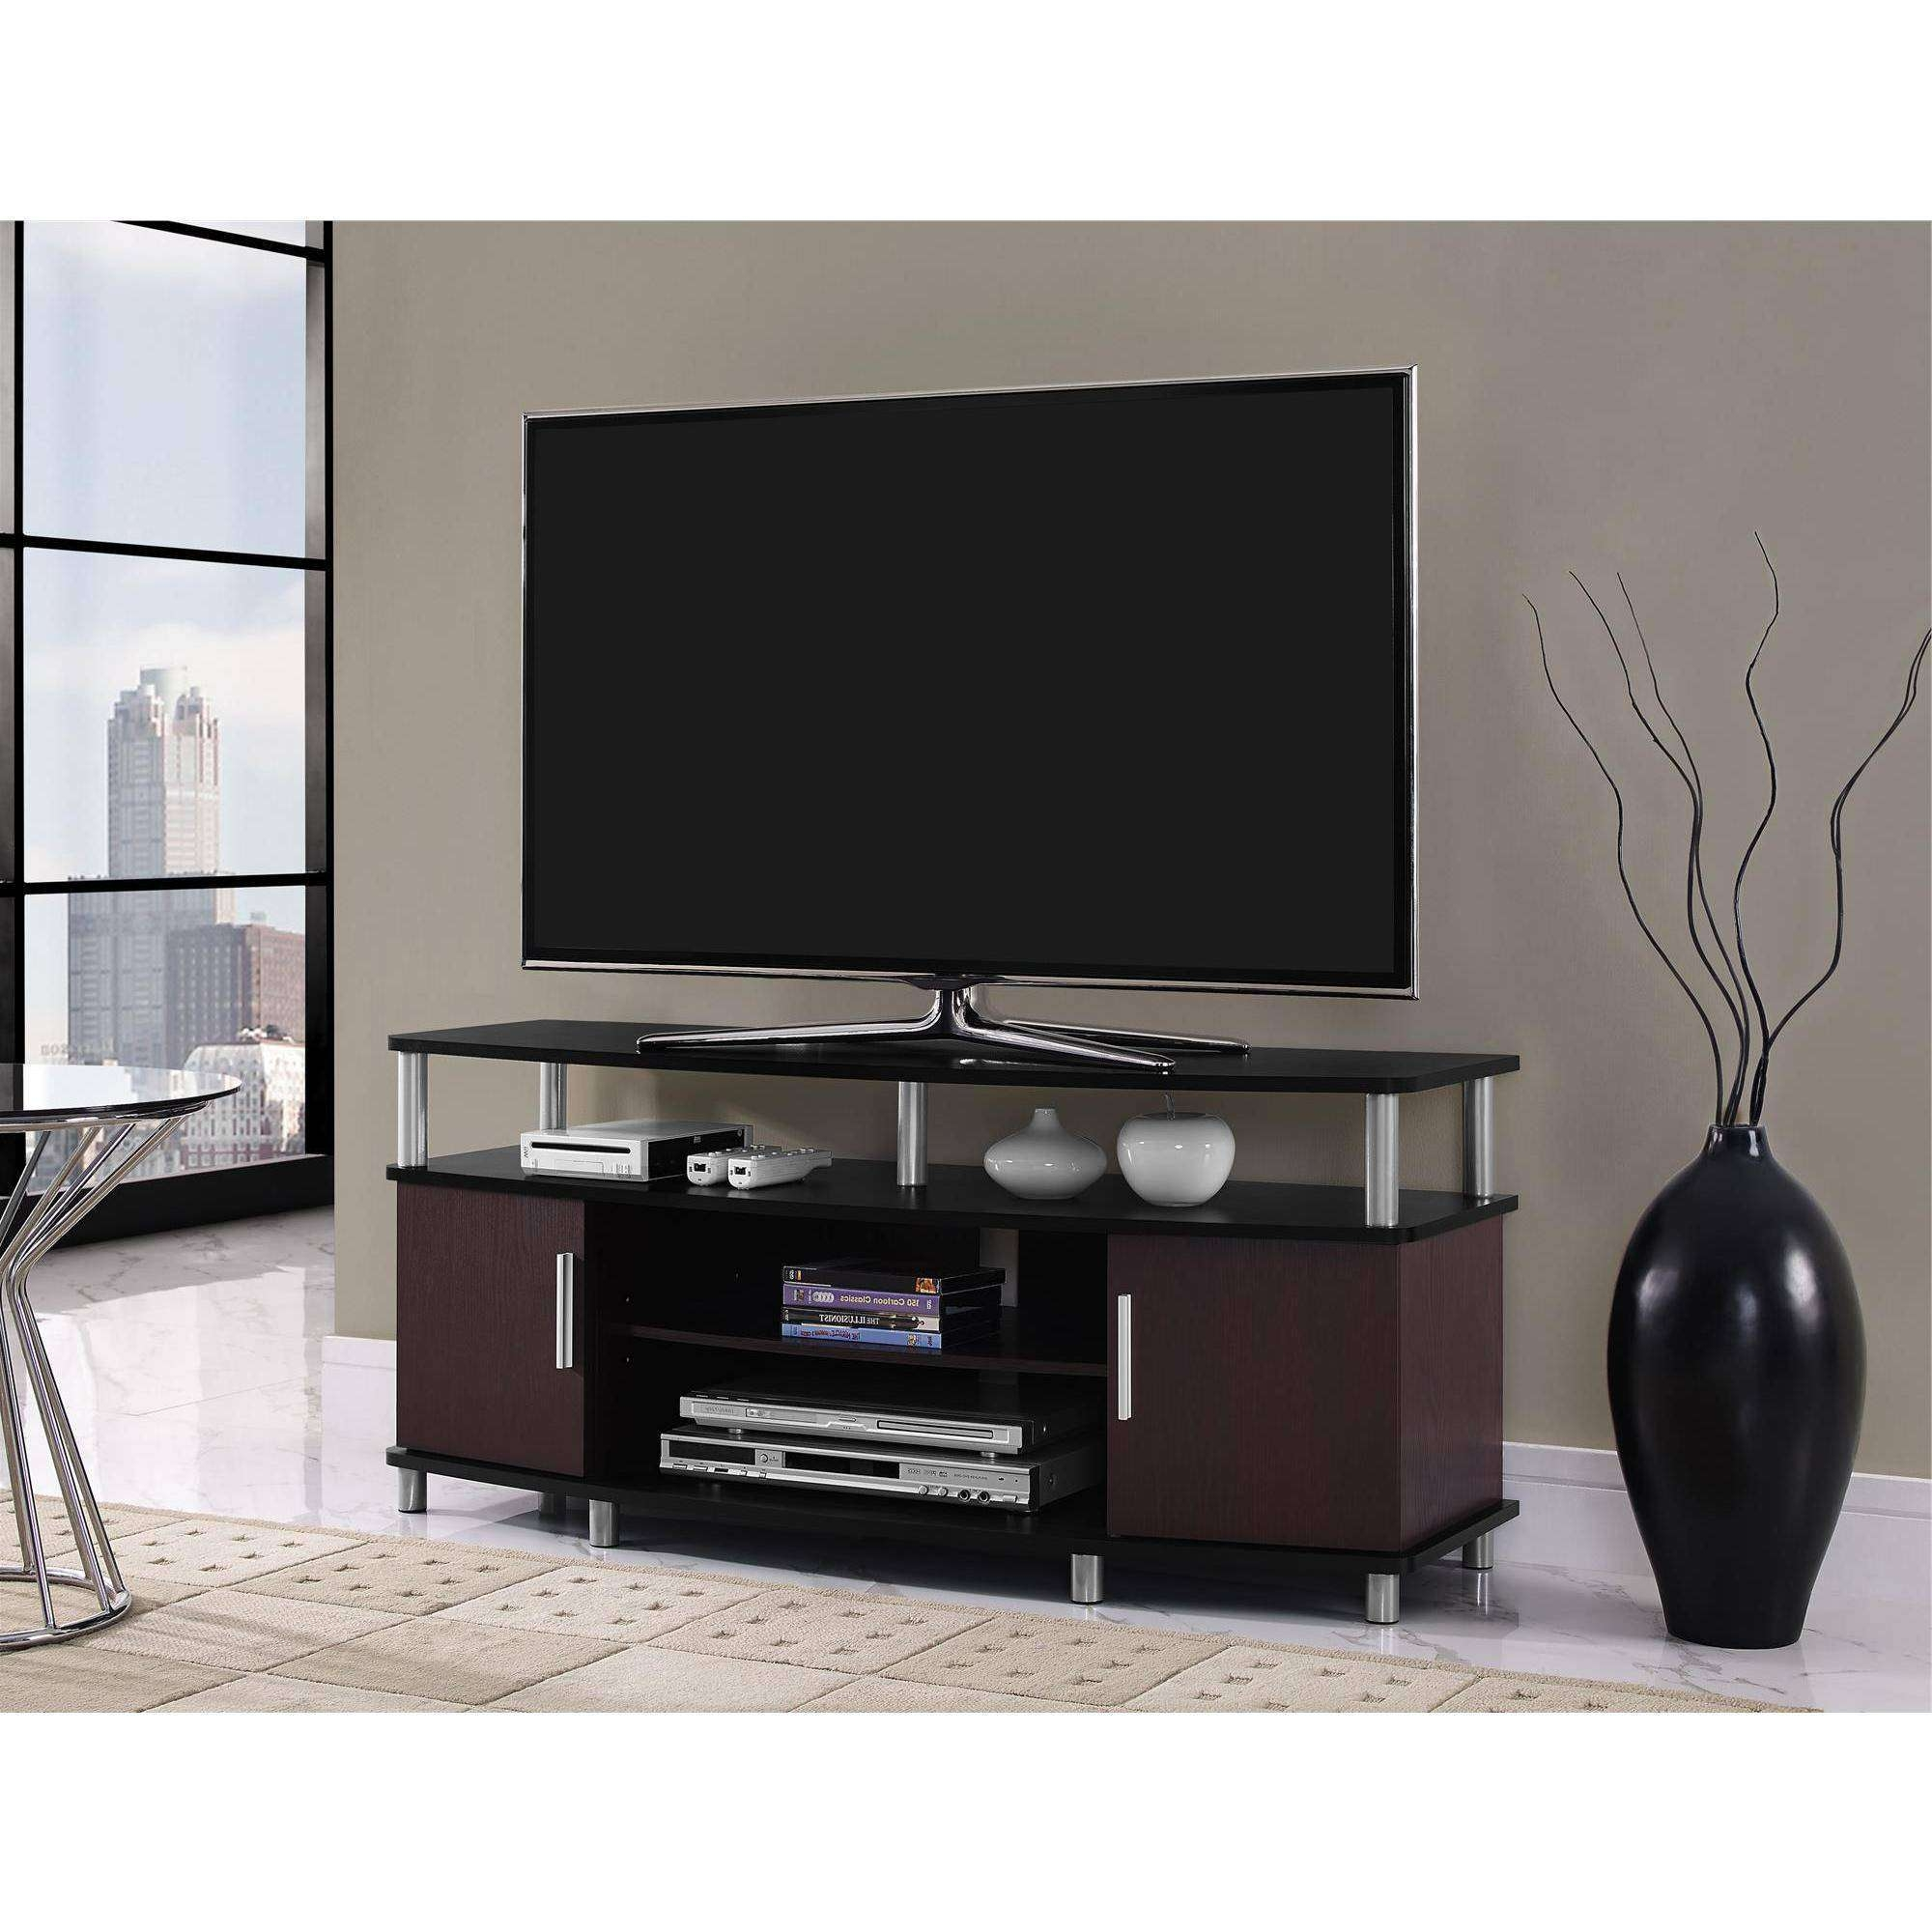 Amazing Corner Tv Stands For 50 Inch Tv 15 For Your Home With Corner Tv Stands For 50 Inch Tv (View 3 of 20)